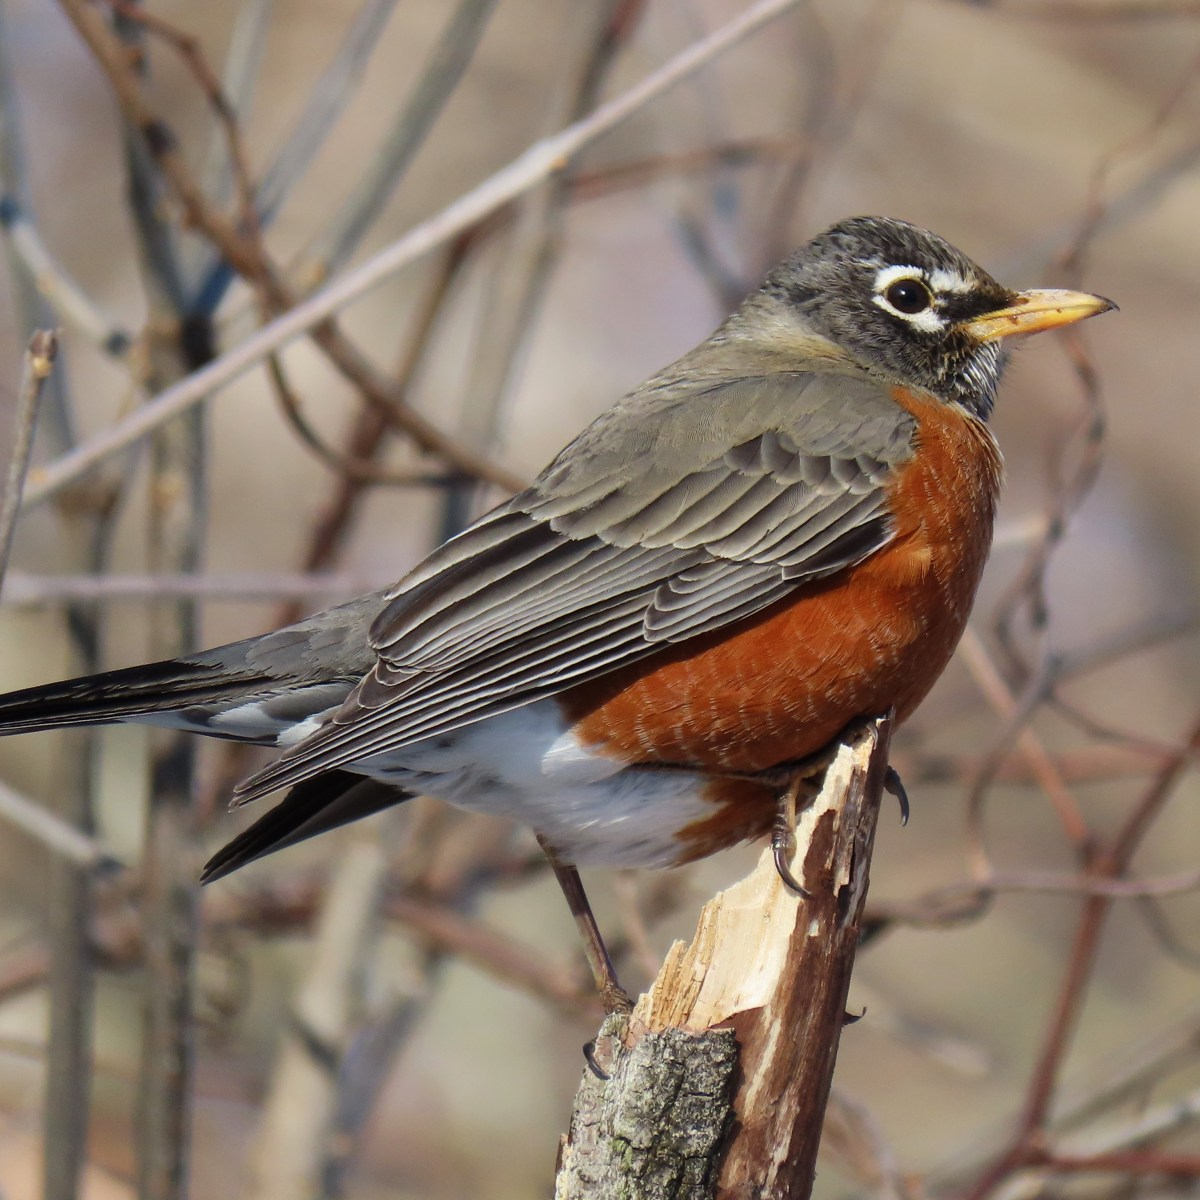 A close up side view of a Robin perched on the edge of a broken branch